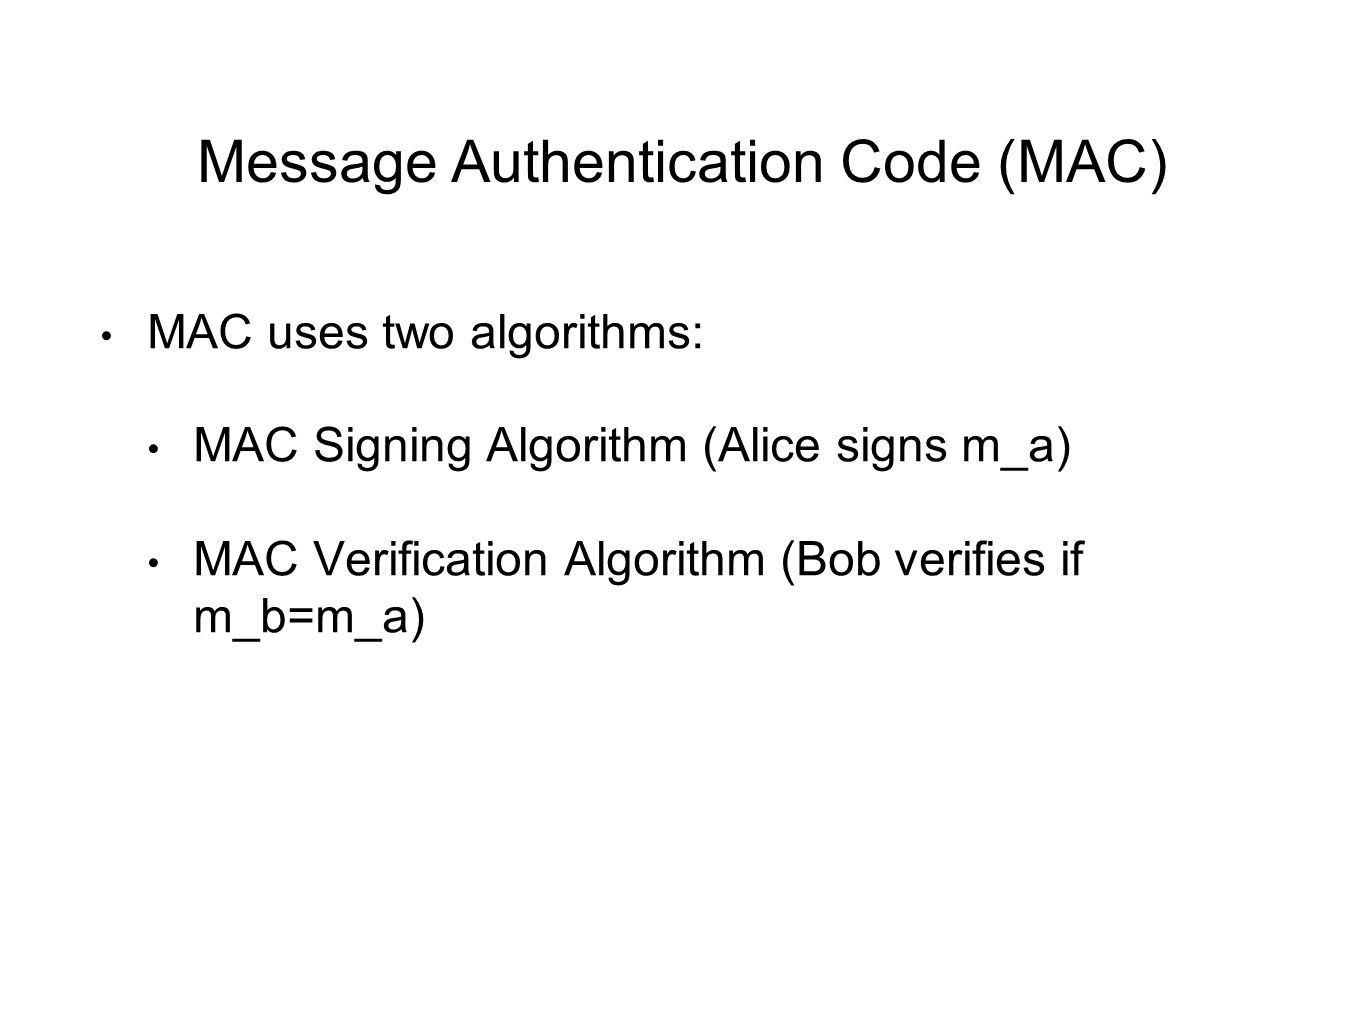 Message Authentication Code (MAC) MAC uses two algorithms: MAC Signing Algorithm (Alice signs m_a) MAC Verification Algorithm (Bob verifies if m_b=m_a)